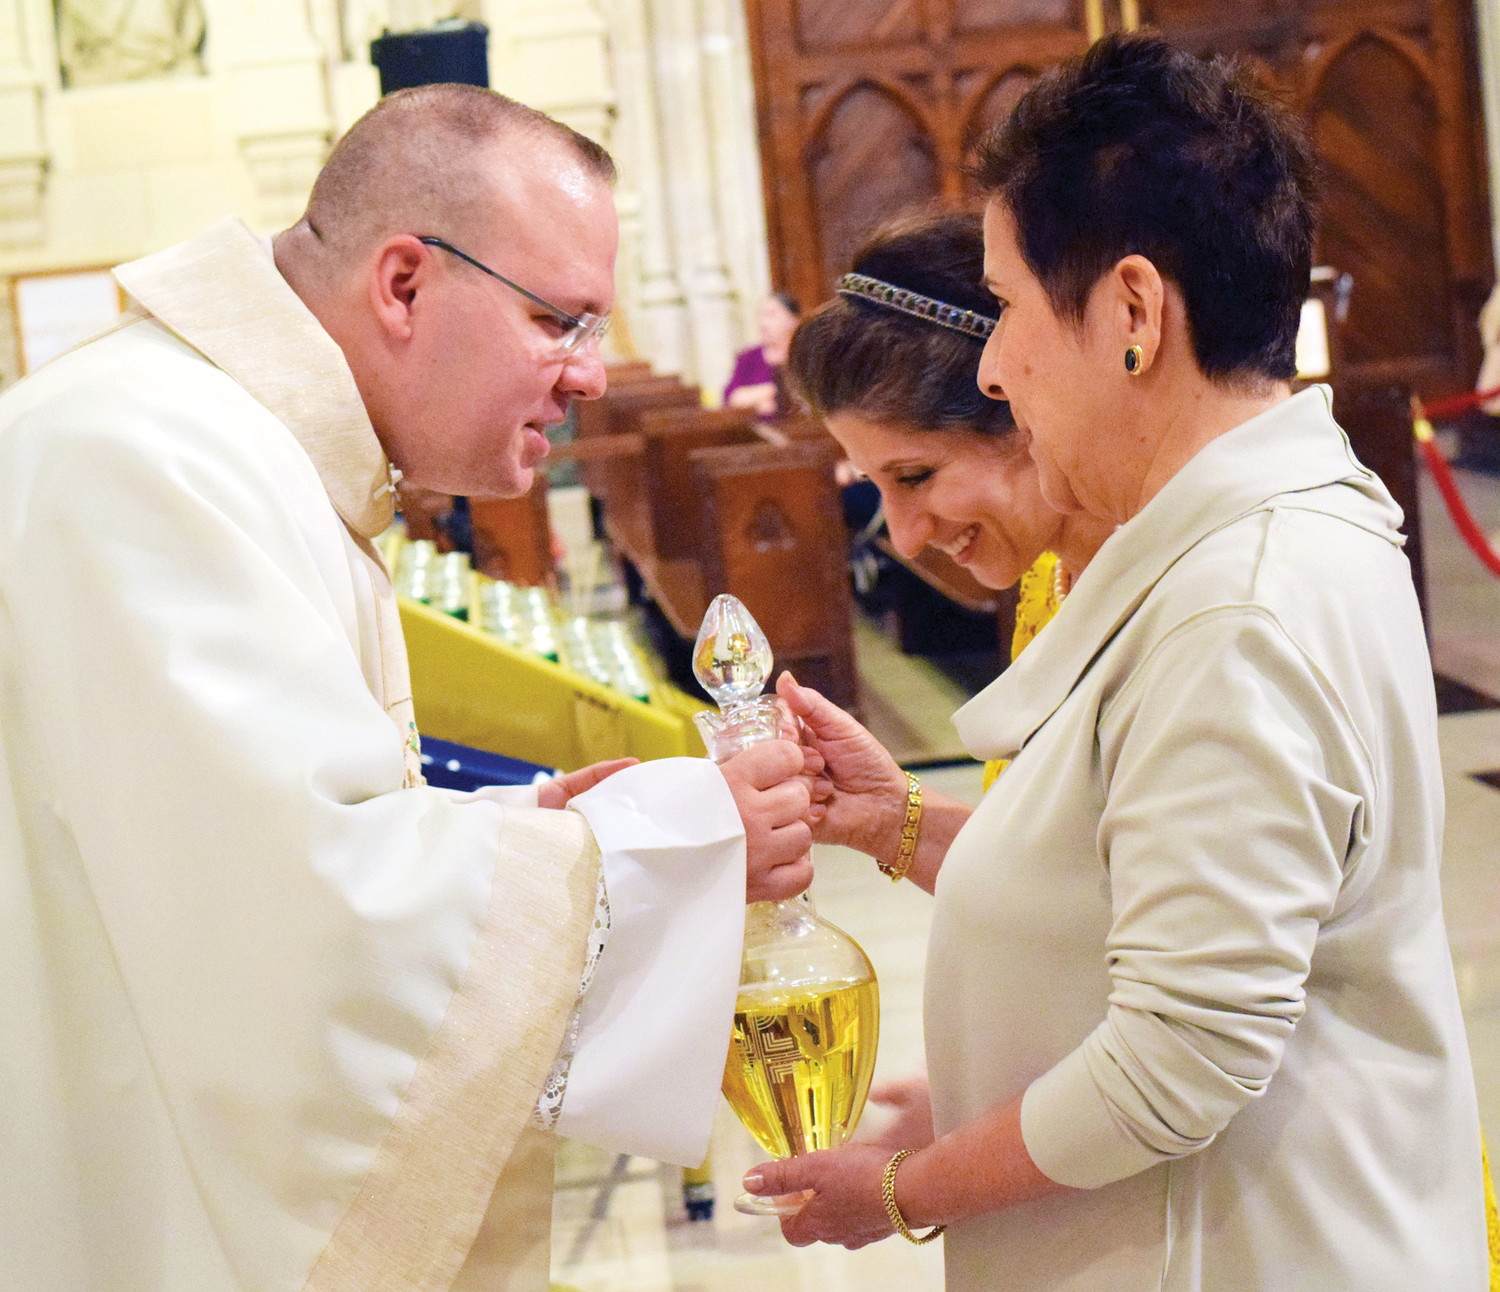 Father Barrios, who was born and raised in Cuba, receives the offertory gifts.